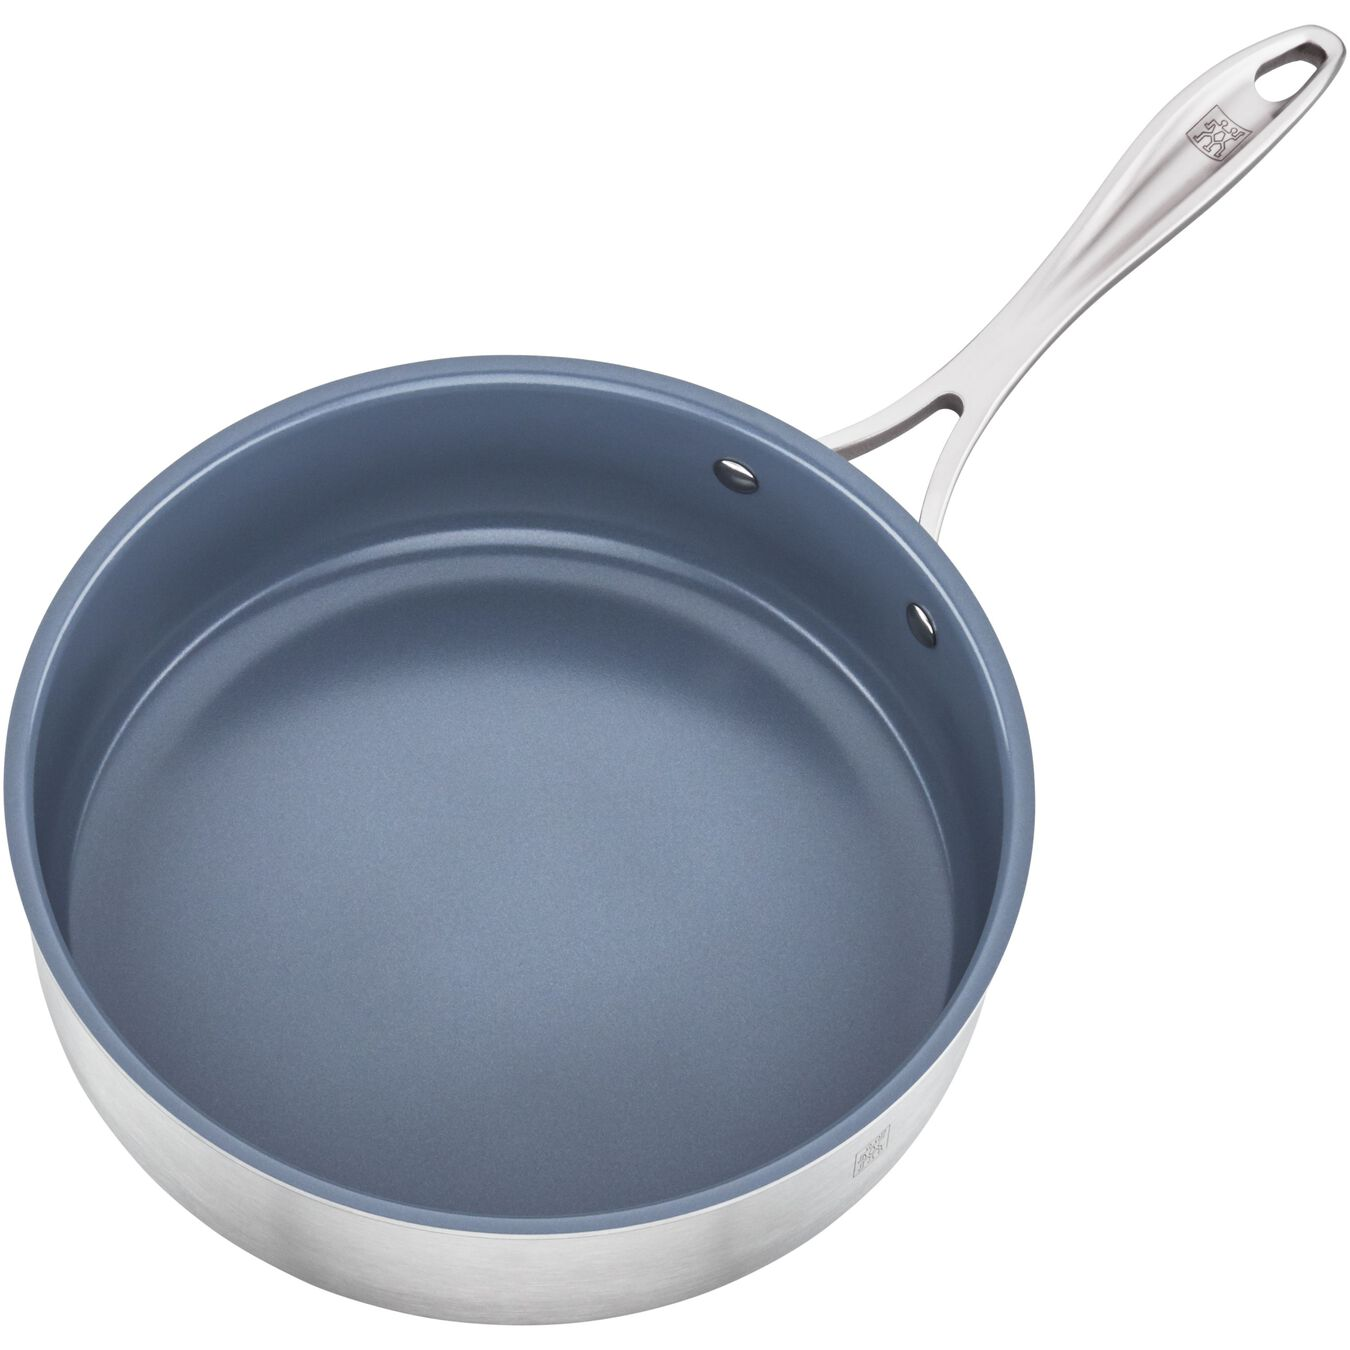 9.5-inch Saute pan, 18/10 Stainless Steel ,,large 2